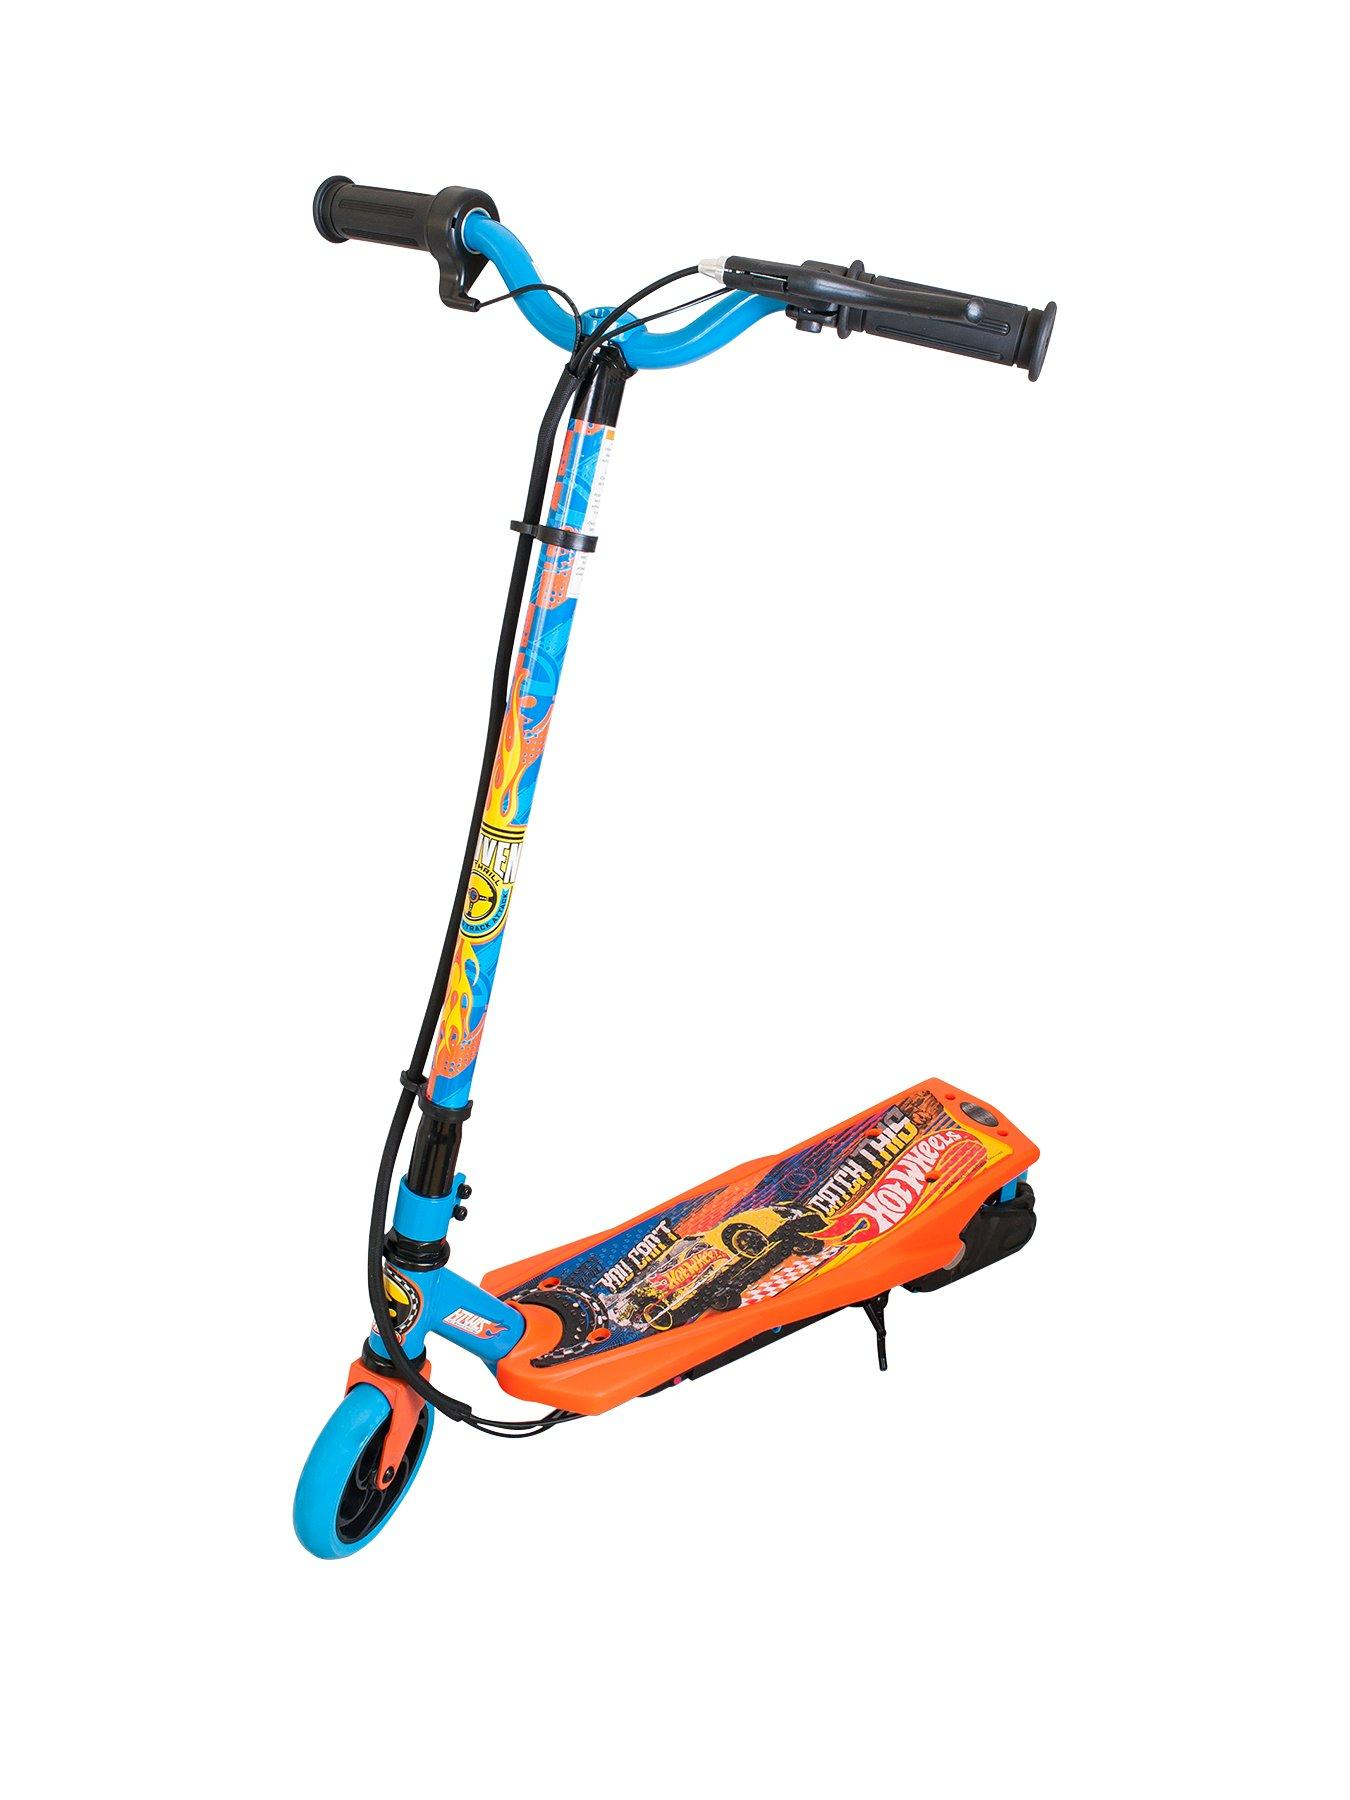 Hot Wheels 80V Hot Wheels Electric Scooter